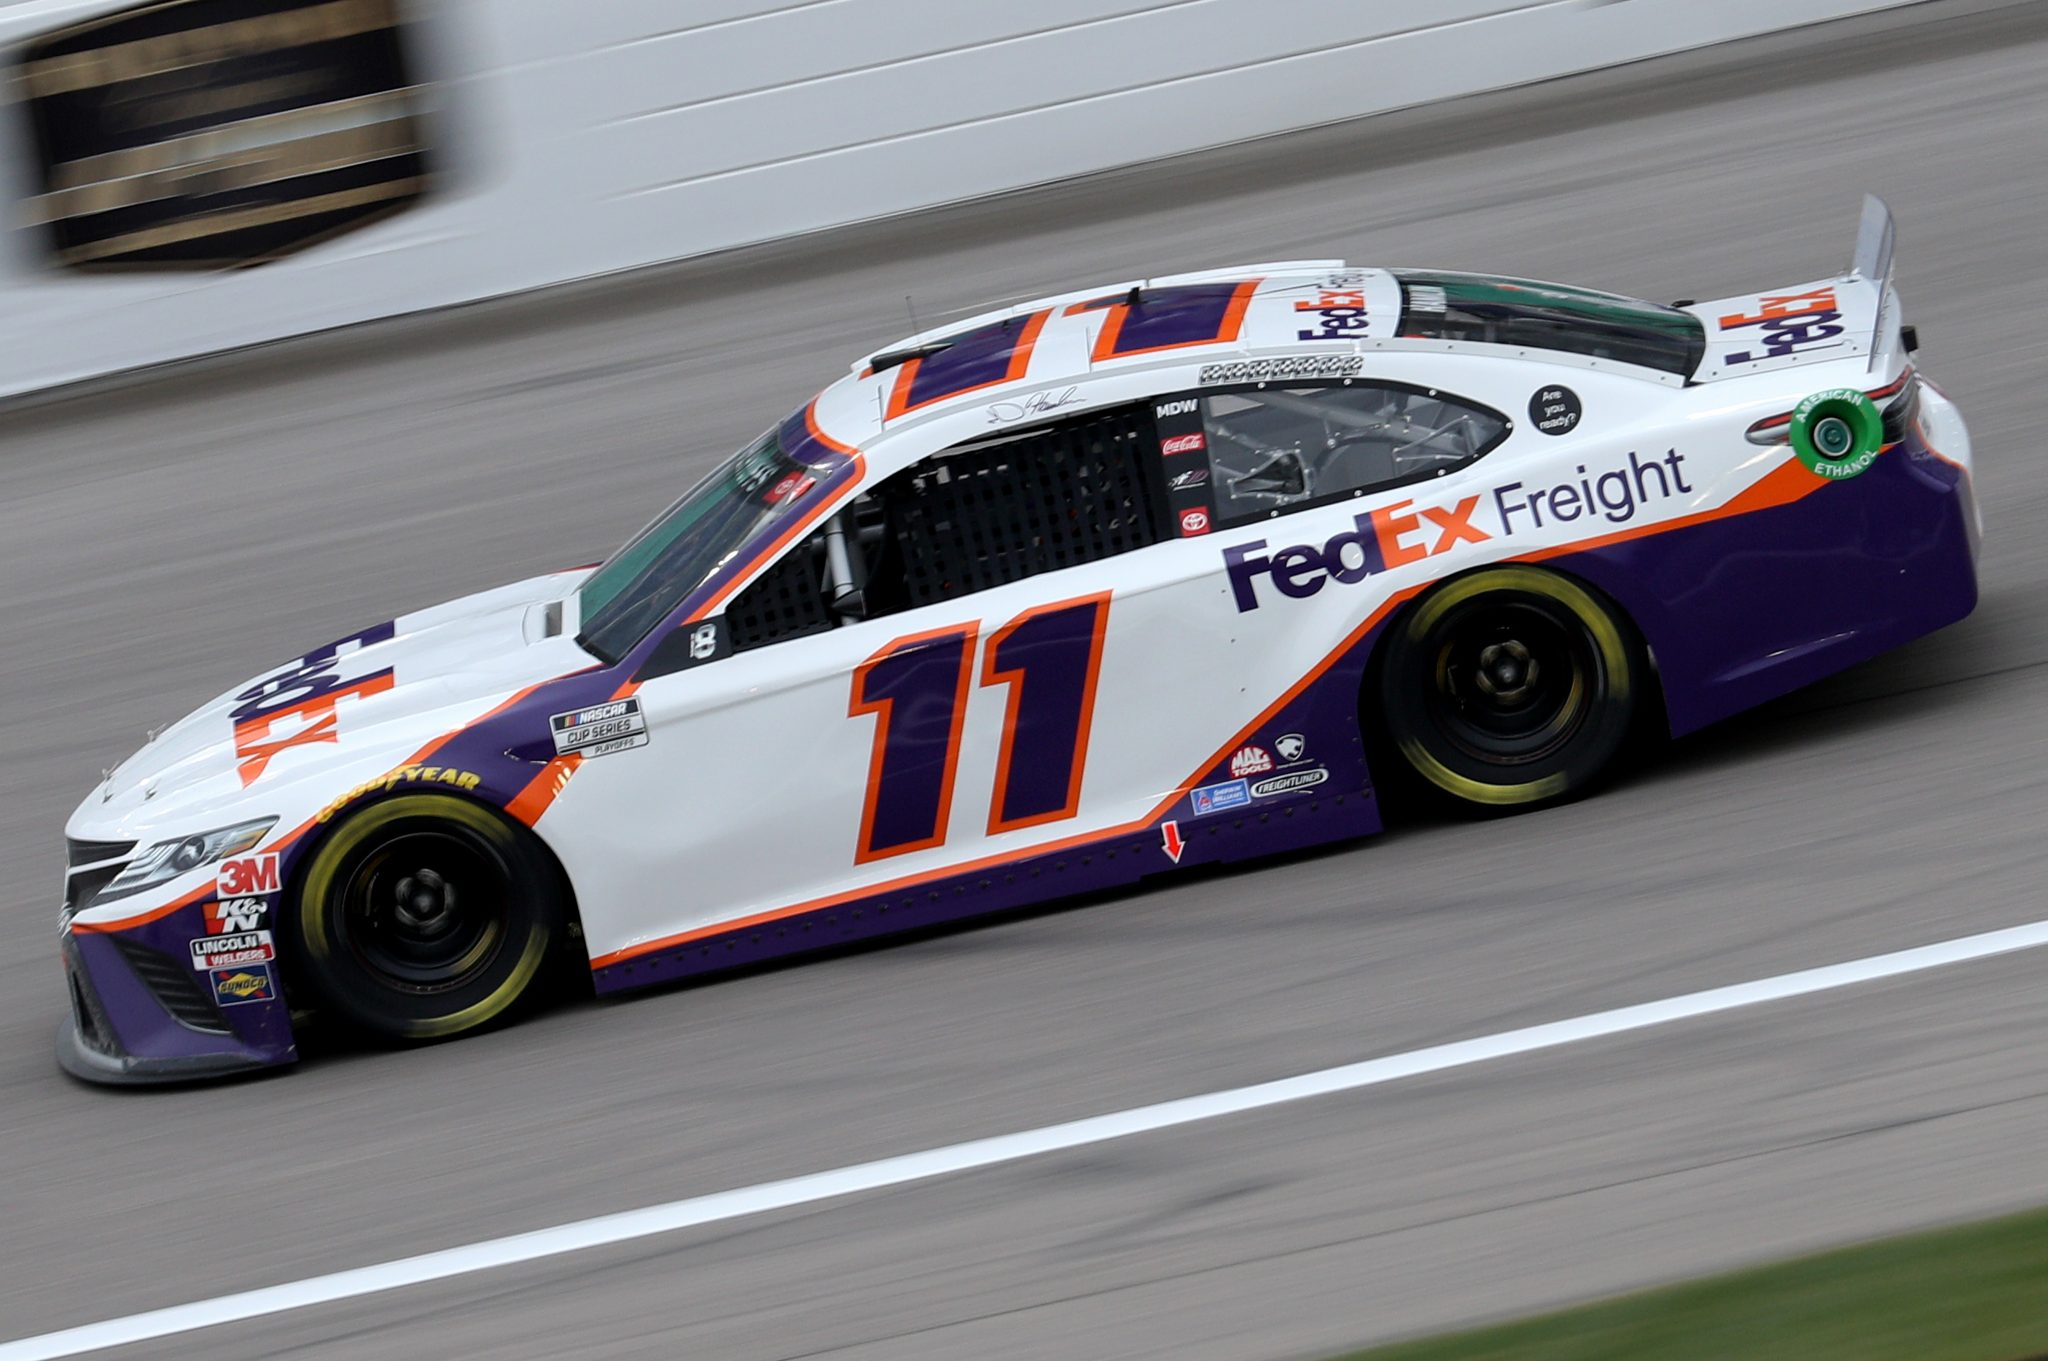 KANSAS CITY, KANSAS - OCTOBER 18: Denny Hamlin, driver of the #11 FedEx Freight Toyota, drives during the NASCAR Cup Series Hollywood Casino 400 at Kansas Speedway on October 18, 2020 in Kansas City, Kansas. (Photo by Chris Graythen/Getty Images) | Getty Images